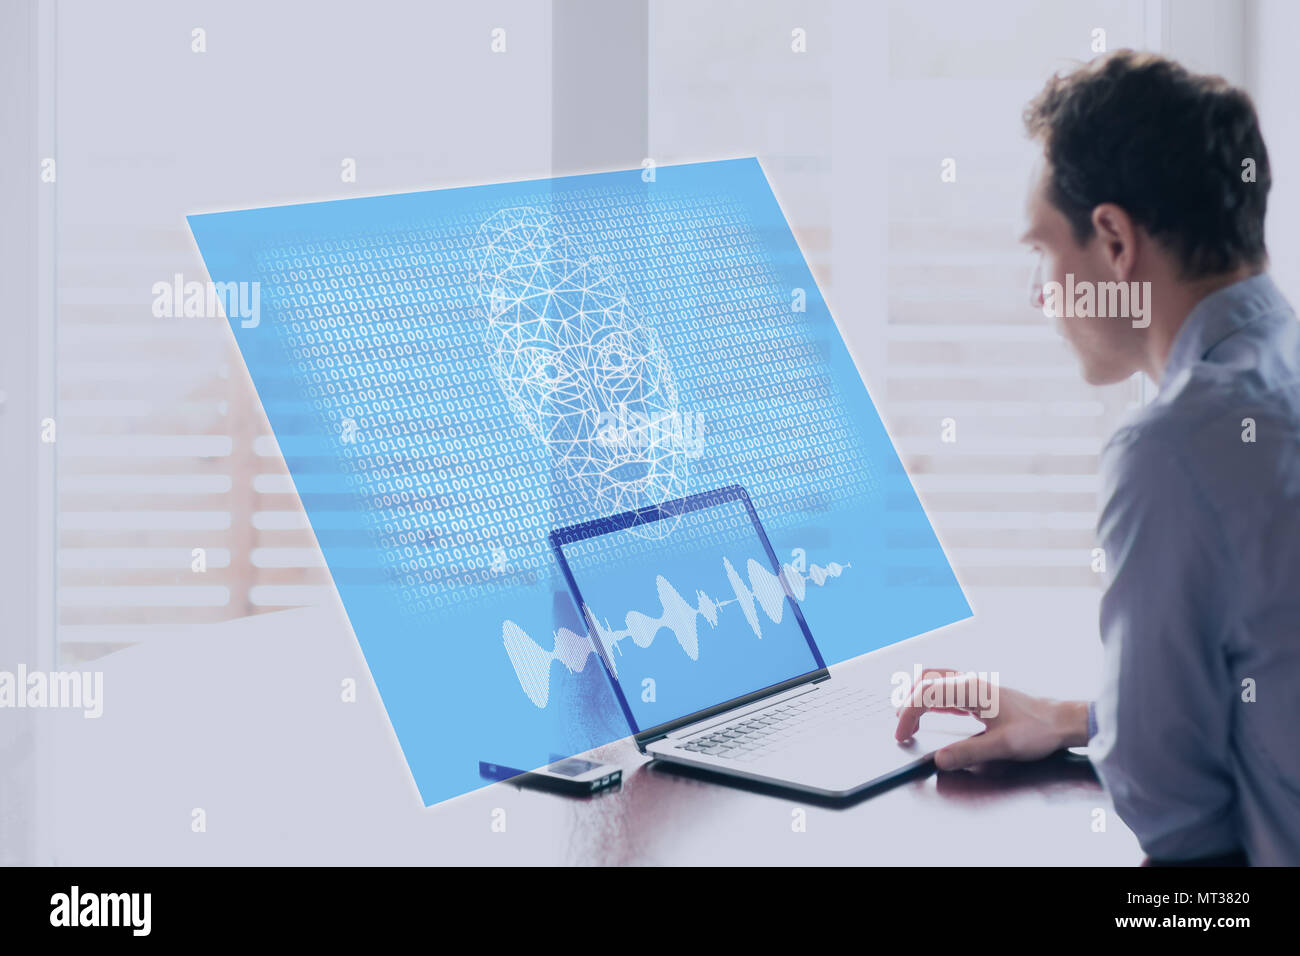 Artificial Intelligence concept with holographic robot face speaking to human on computer screen with binary code, machine learning and AI risks and t - Stock Image